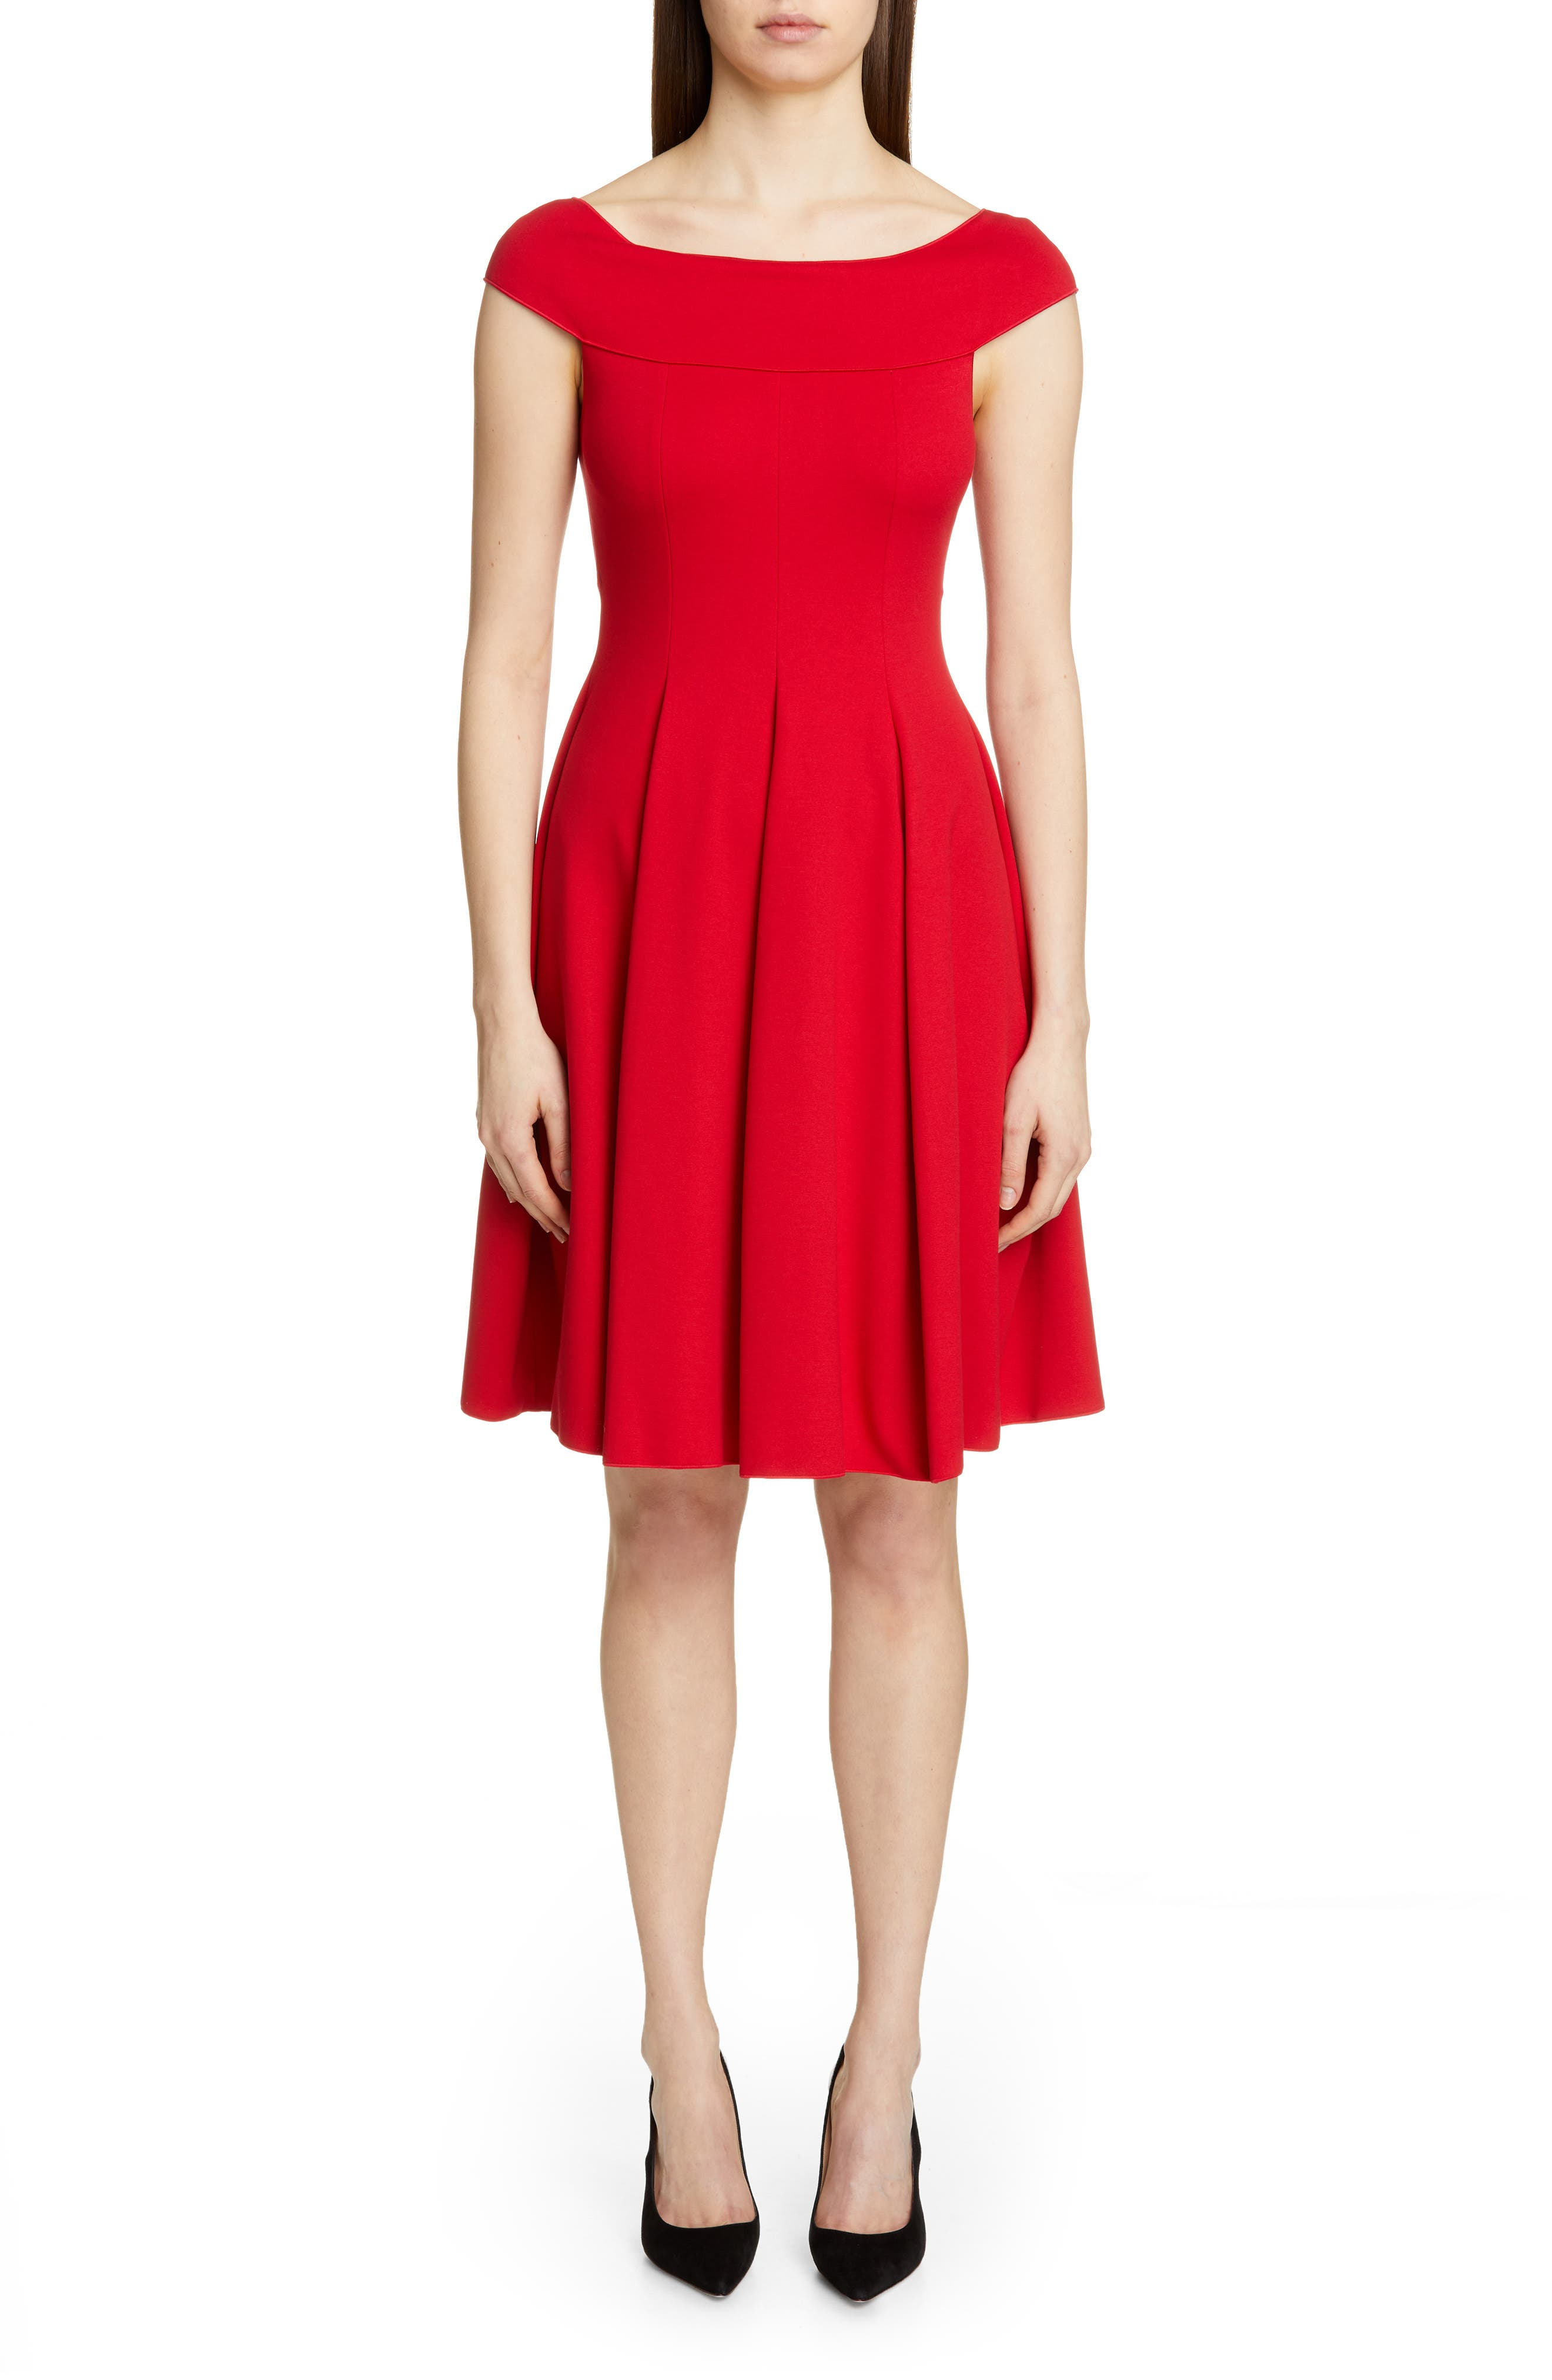 86964acb5b141 Emporio Armani Off The Shoulder A-Line Dress, US / 44 IT - Red